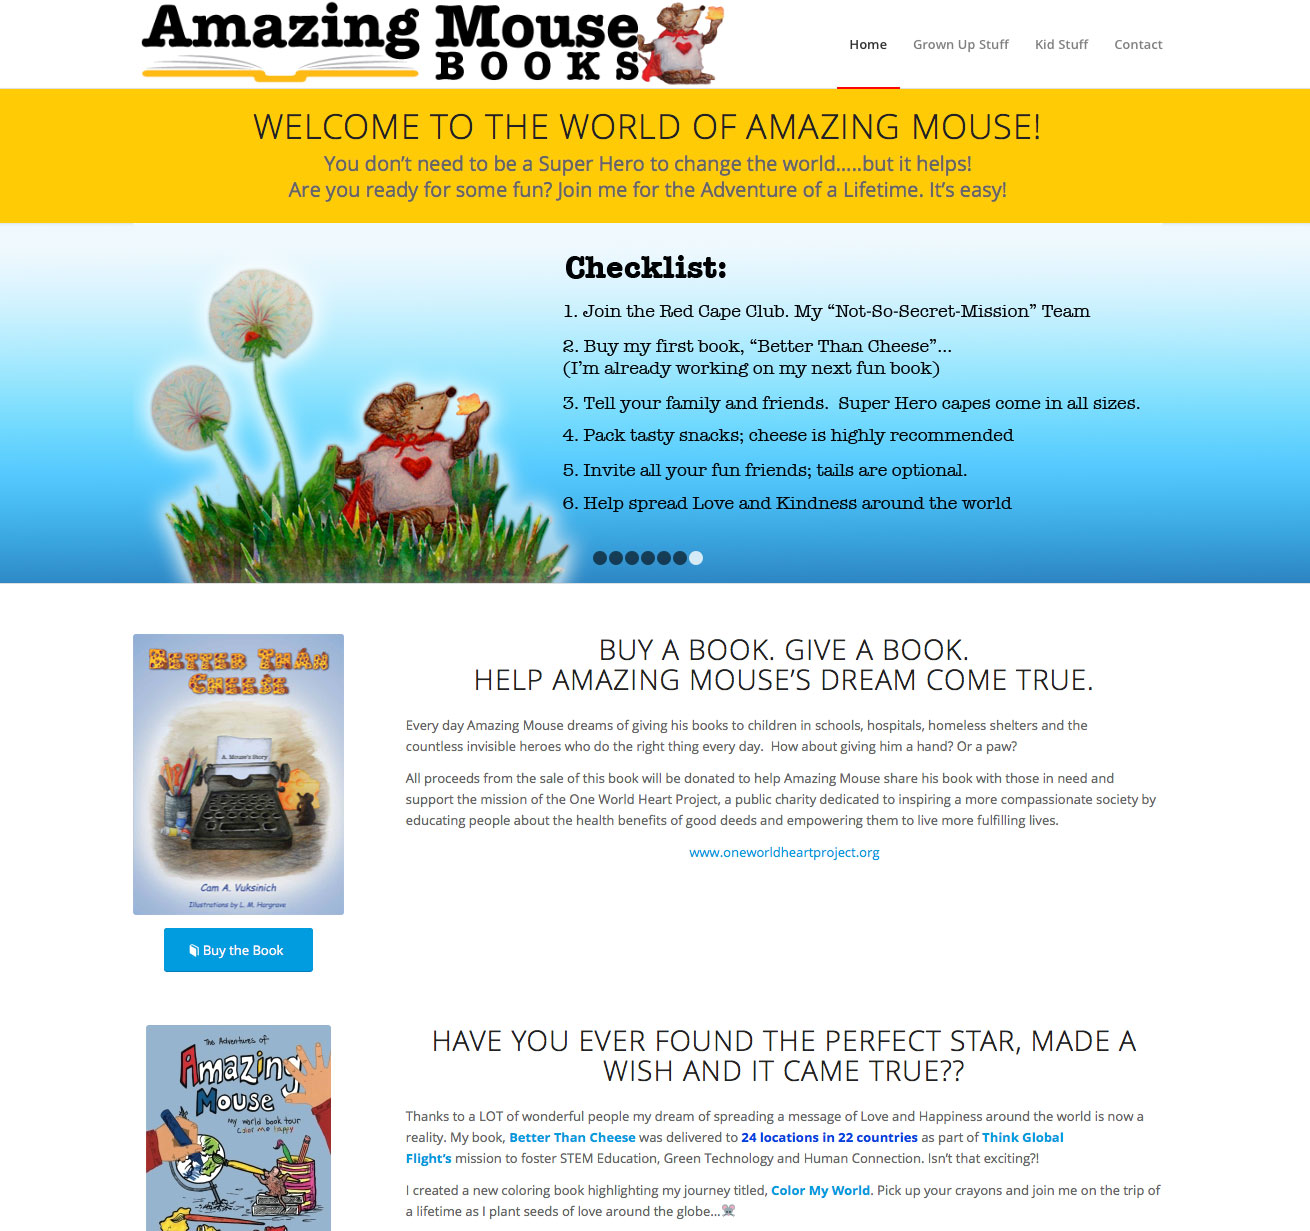 Amazing Mouse Books website design